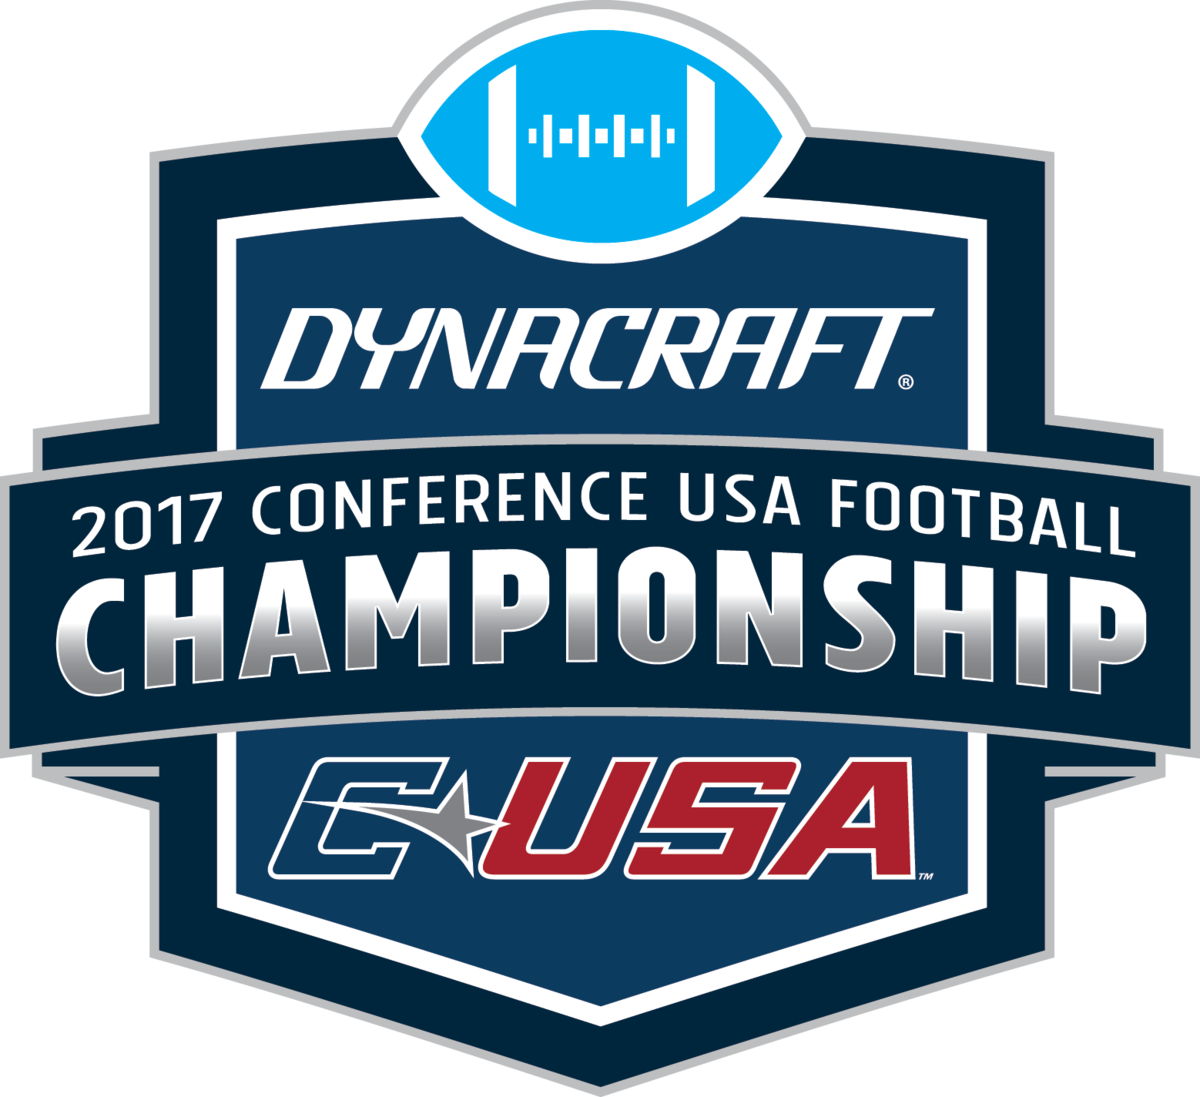 Ass kicking COMPLETE.  FINAL: #FAU 52 #FIU 24   The 2017 #CUSA Football Championship will #cometothefaU at Schnellenberger Field!  Not bad for a team picked to finish 5th in their division, eh Owl Fans?  That&#39;s a BIG #OwlsUP!  <br>http://pic.twitter.com/b4Tn7WmA4B